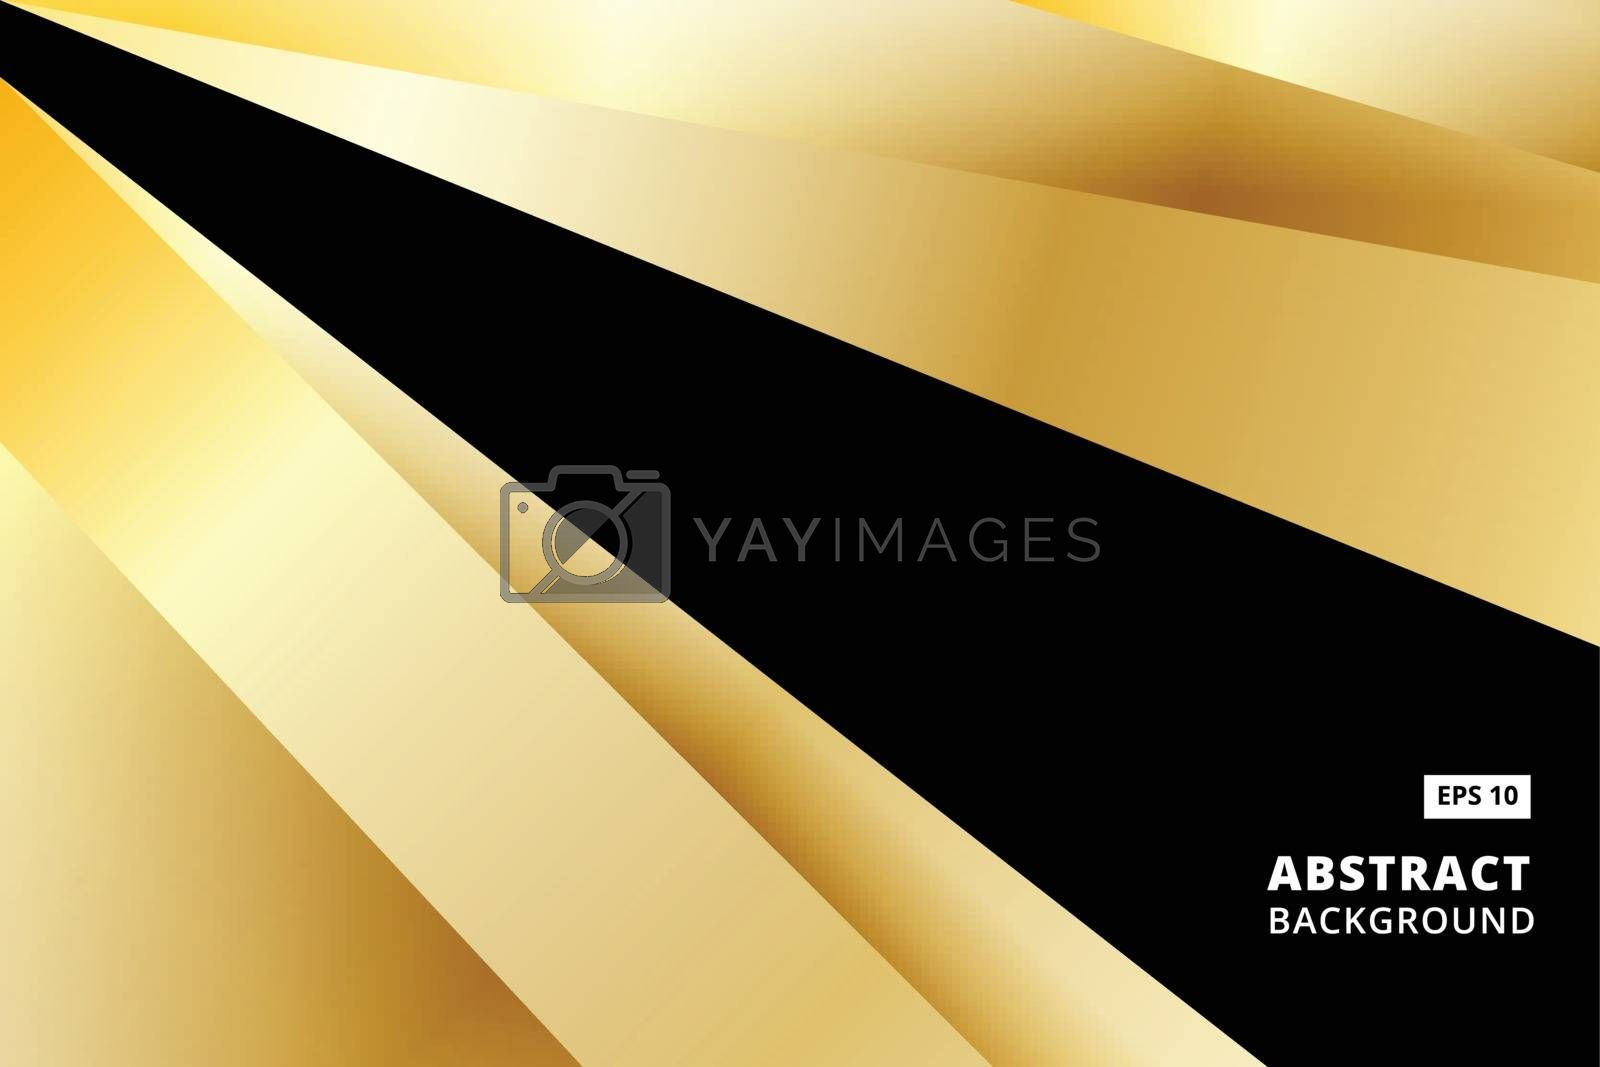 Abstract striped graphic gold and black color background vector illustration